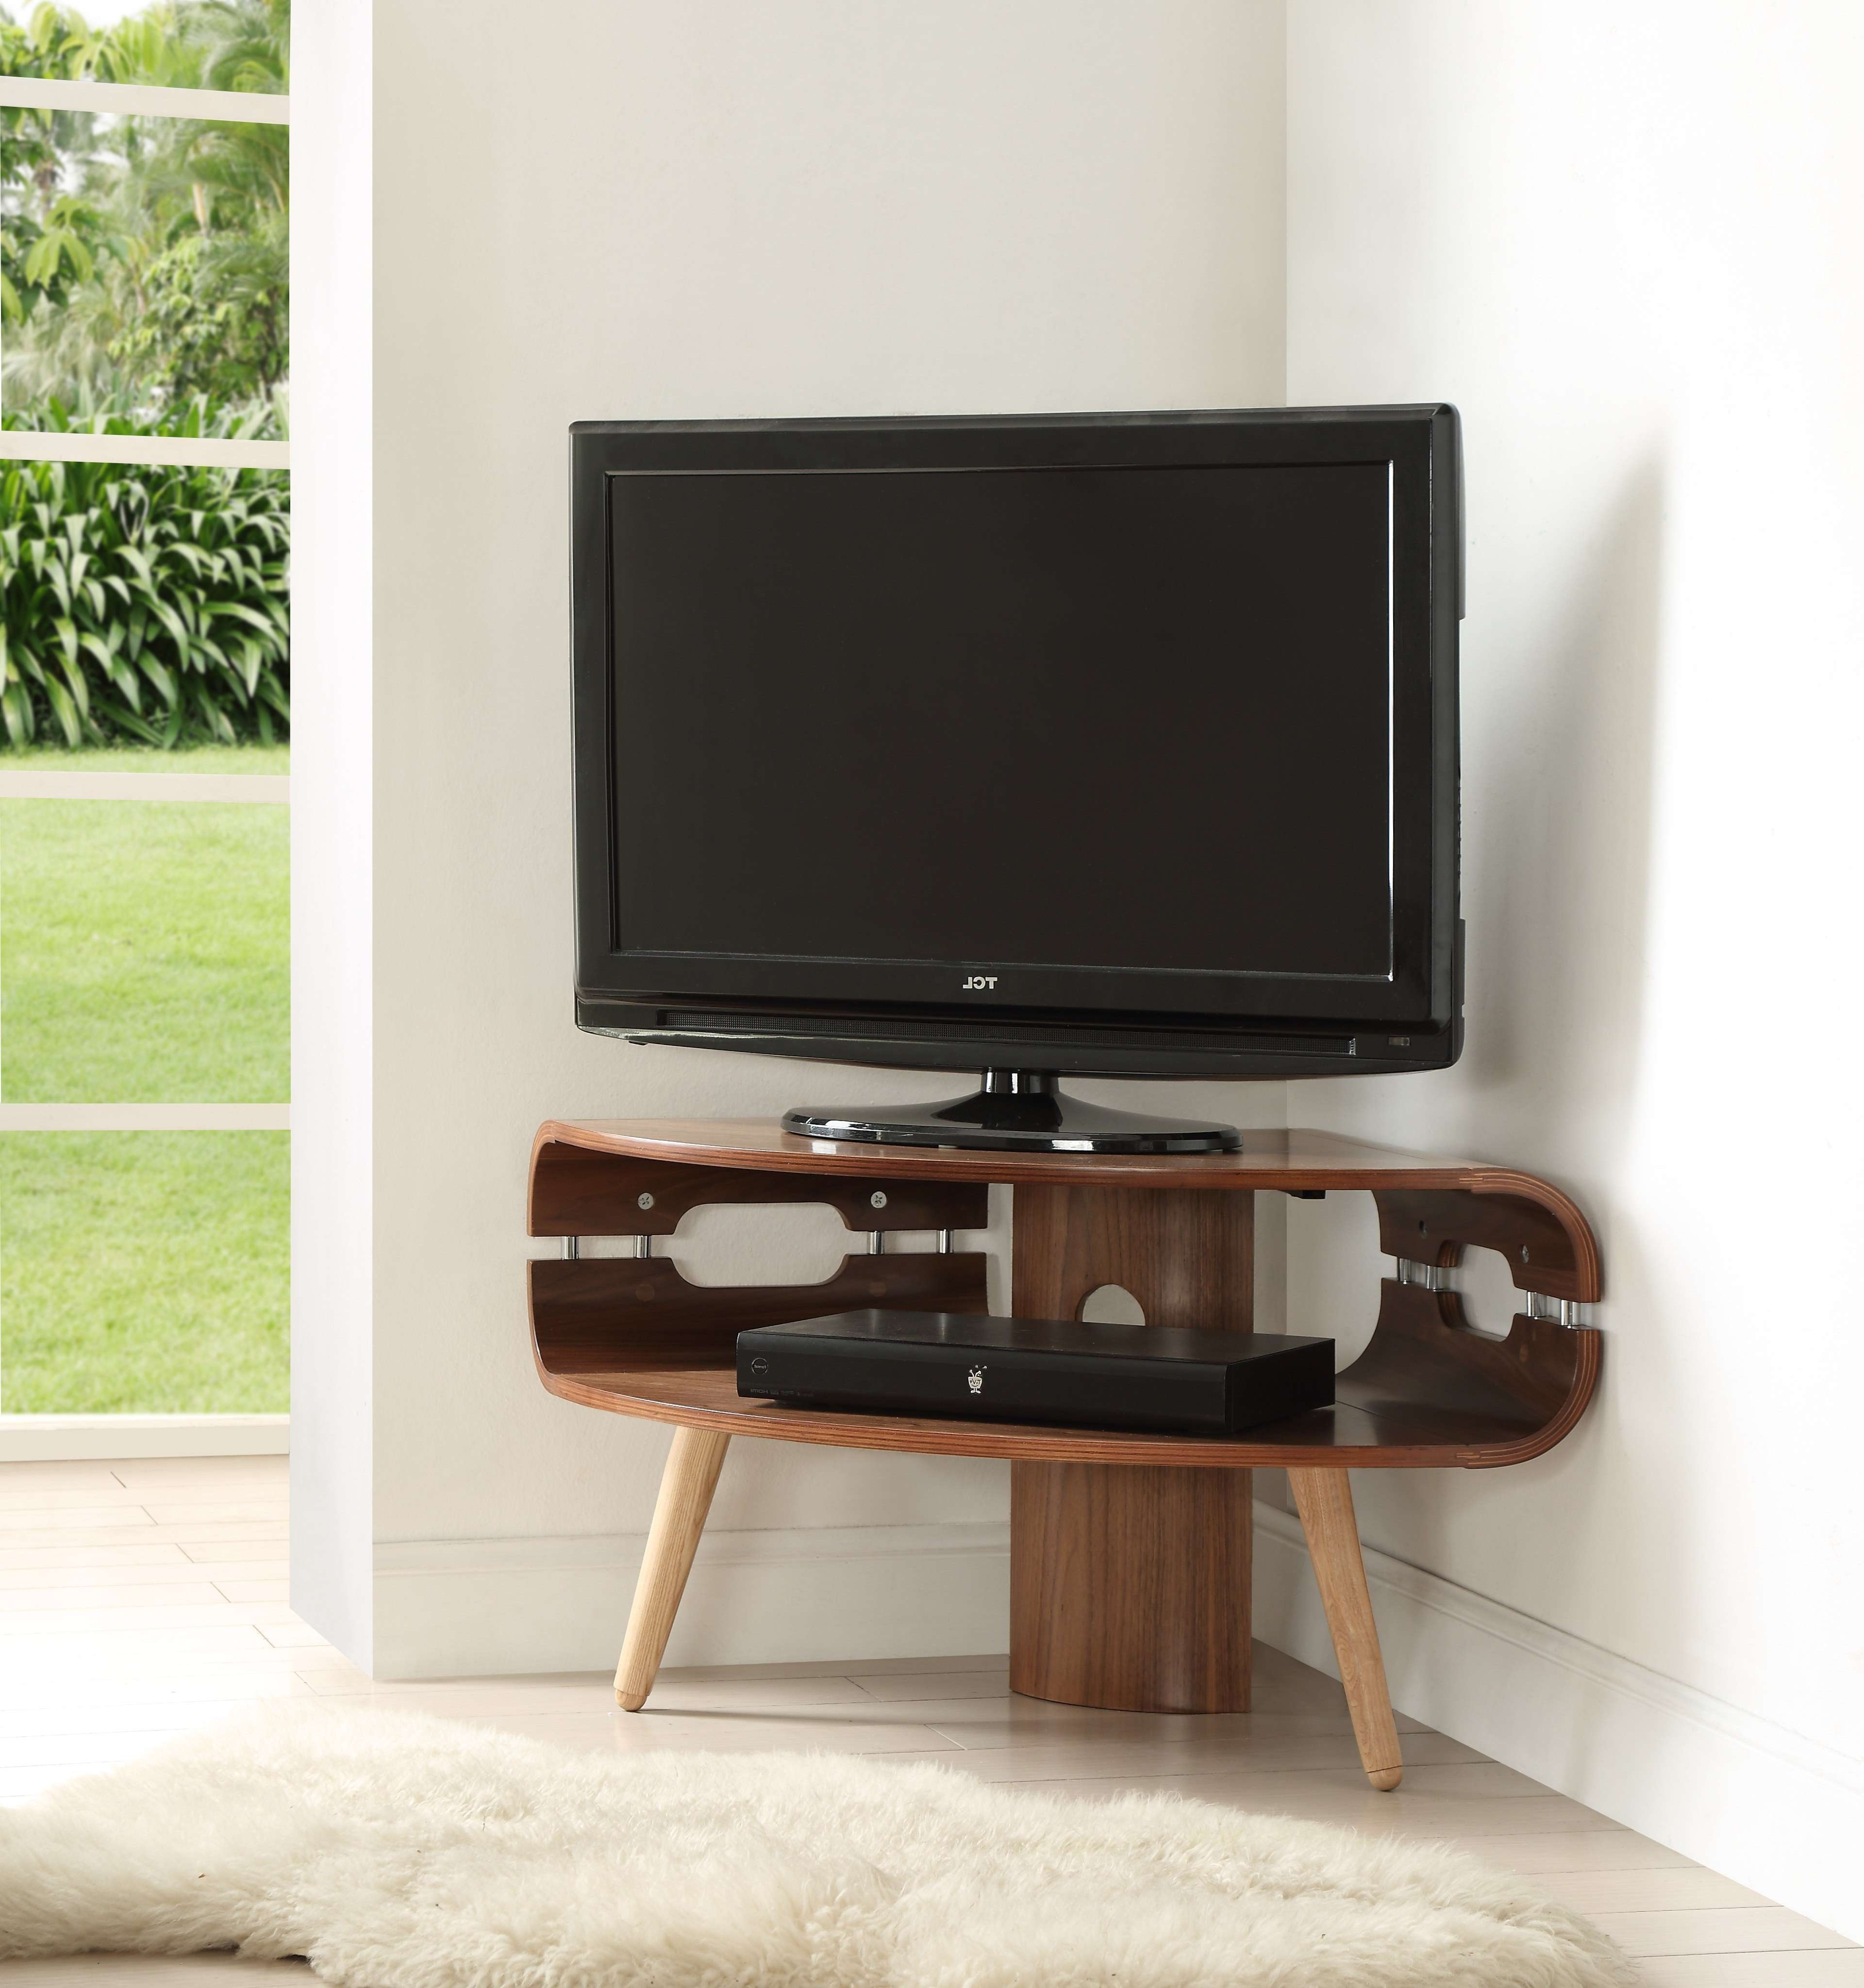 Bedroom Design : Awesome Corner Tv Cabinet Tv Stand With Storage With Regard To Cabinet Tv Stands (View 2 of 15)